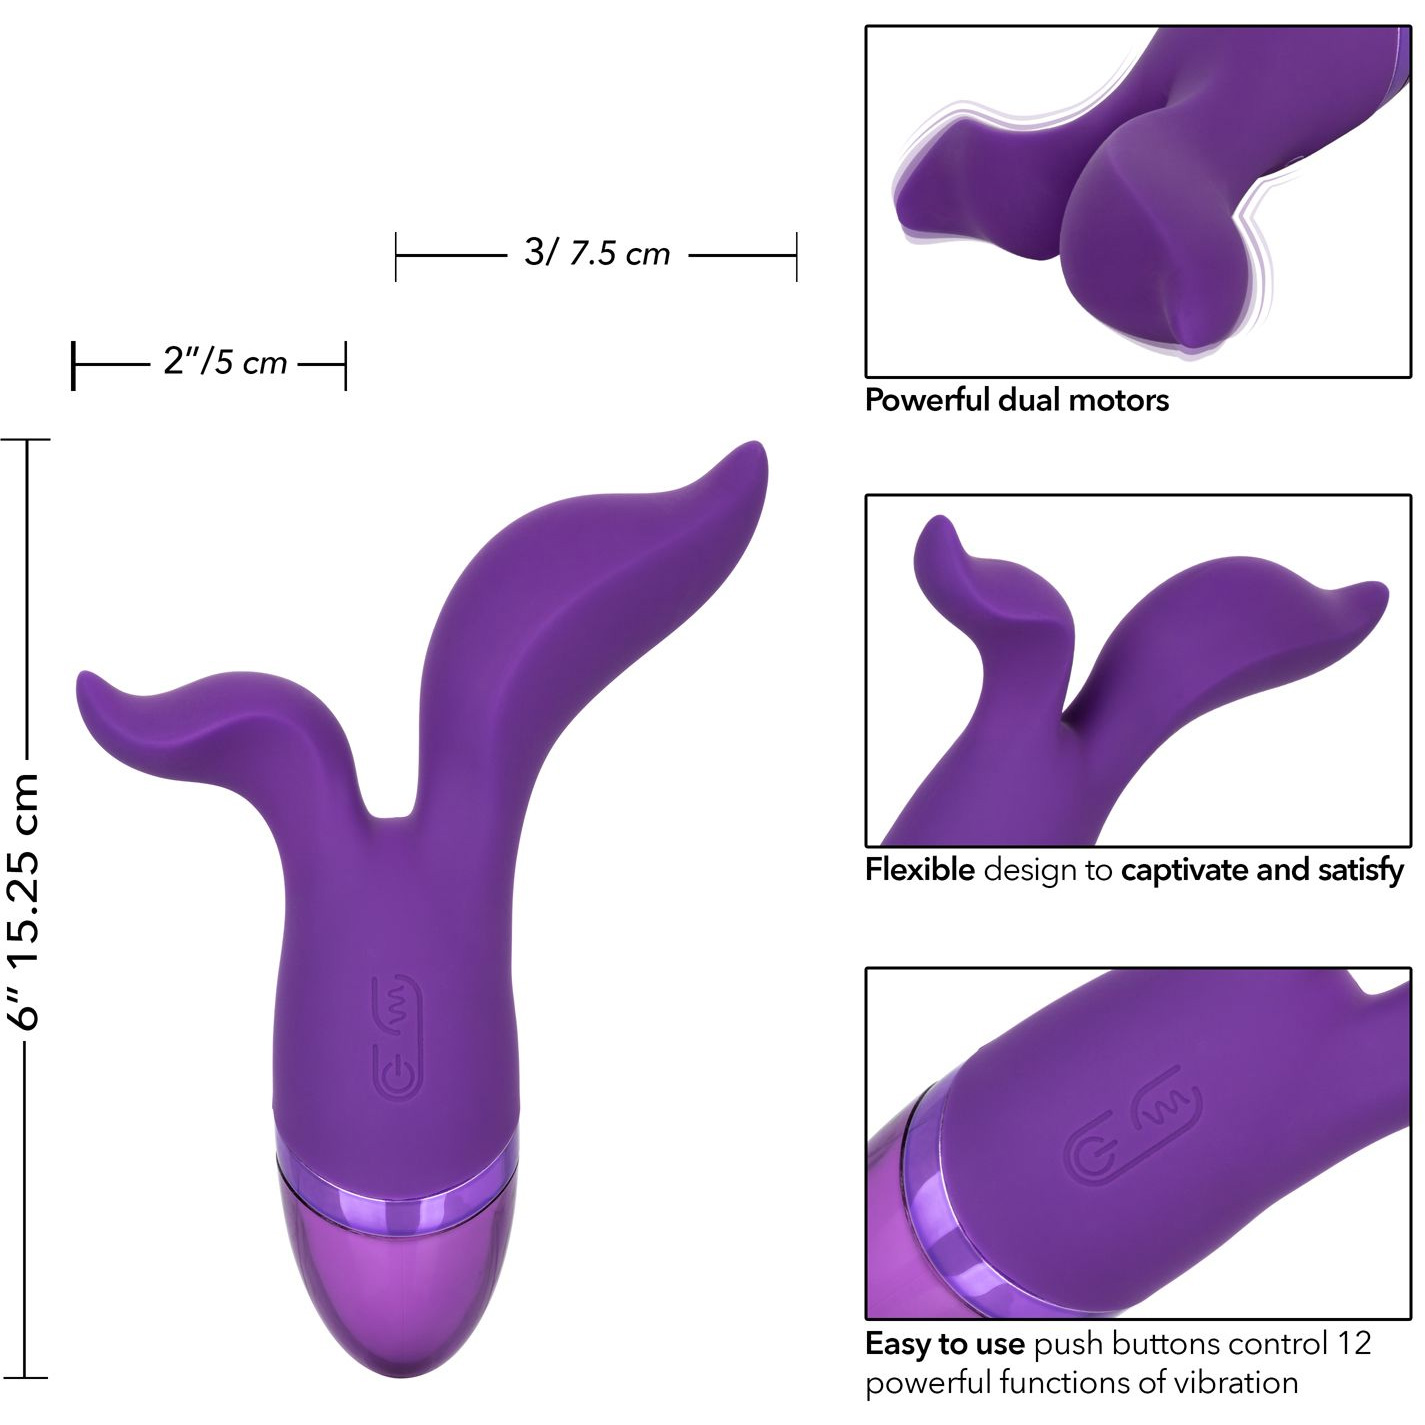 Aura Duo Silicone Rechargeable Dual Stimulation Vibrator - Measurements